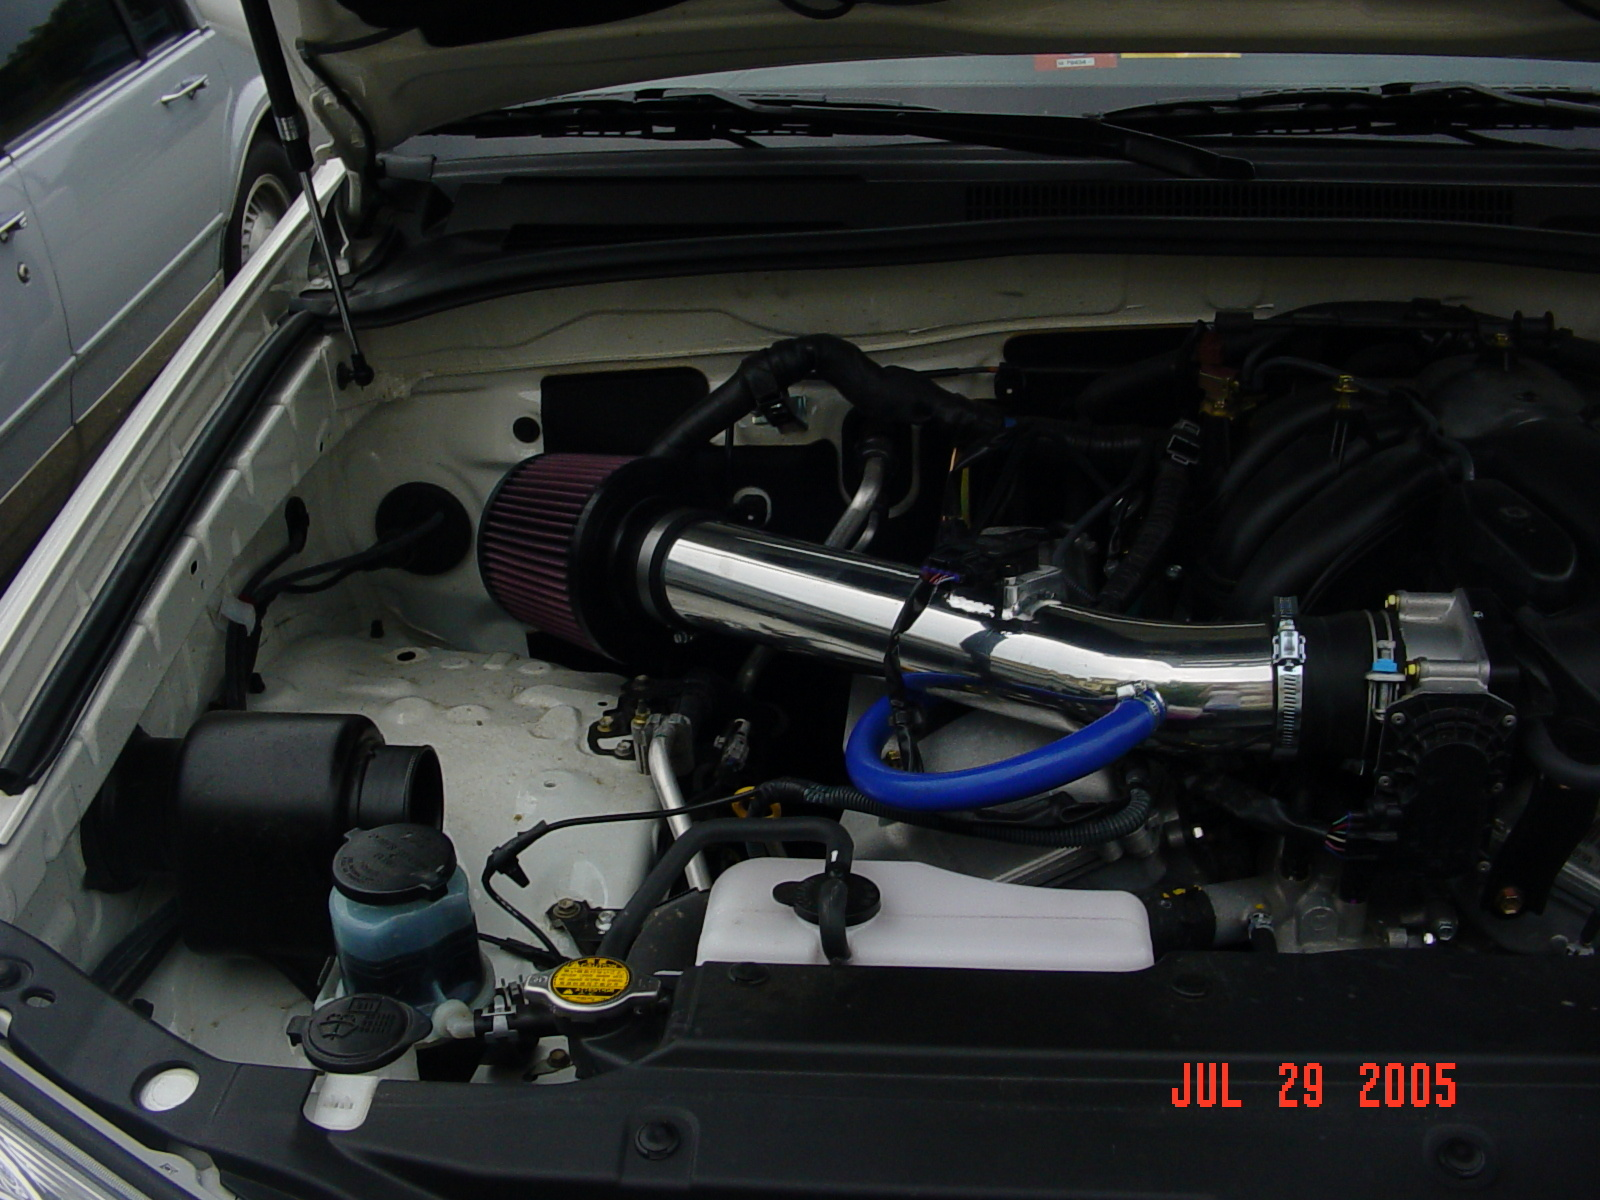 Toyota 4Runner Questions   Has Anyone Installed A Cold Air Intake With Good  Results On Improved F...   CarGurus